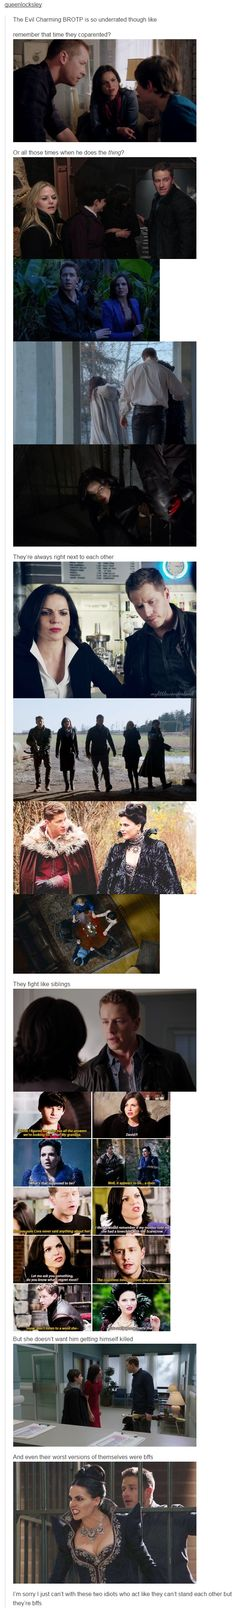 EvilCharming Brotp! XD dying<<<I hadn't thought of this but I like it.